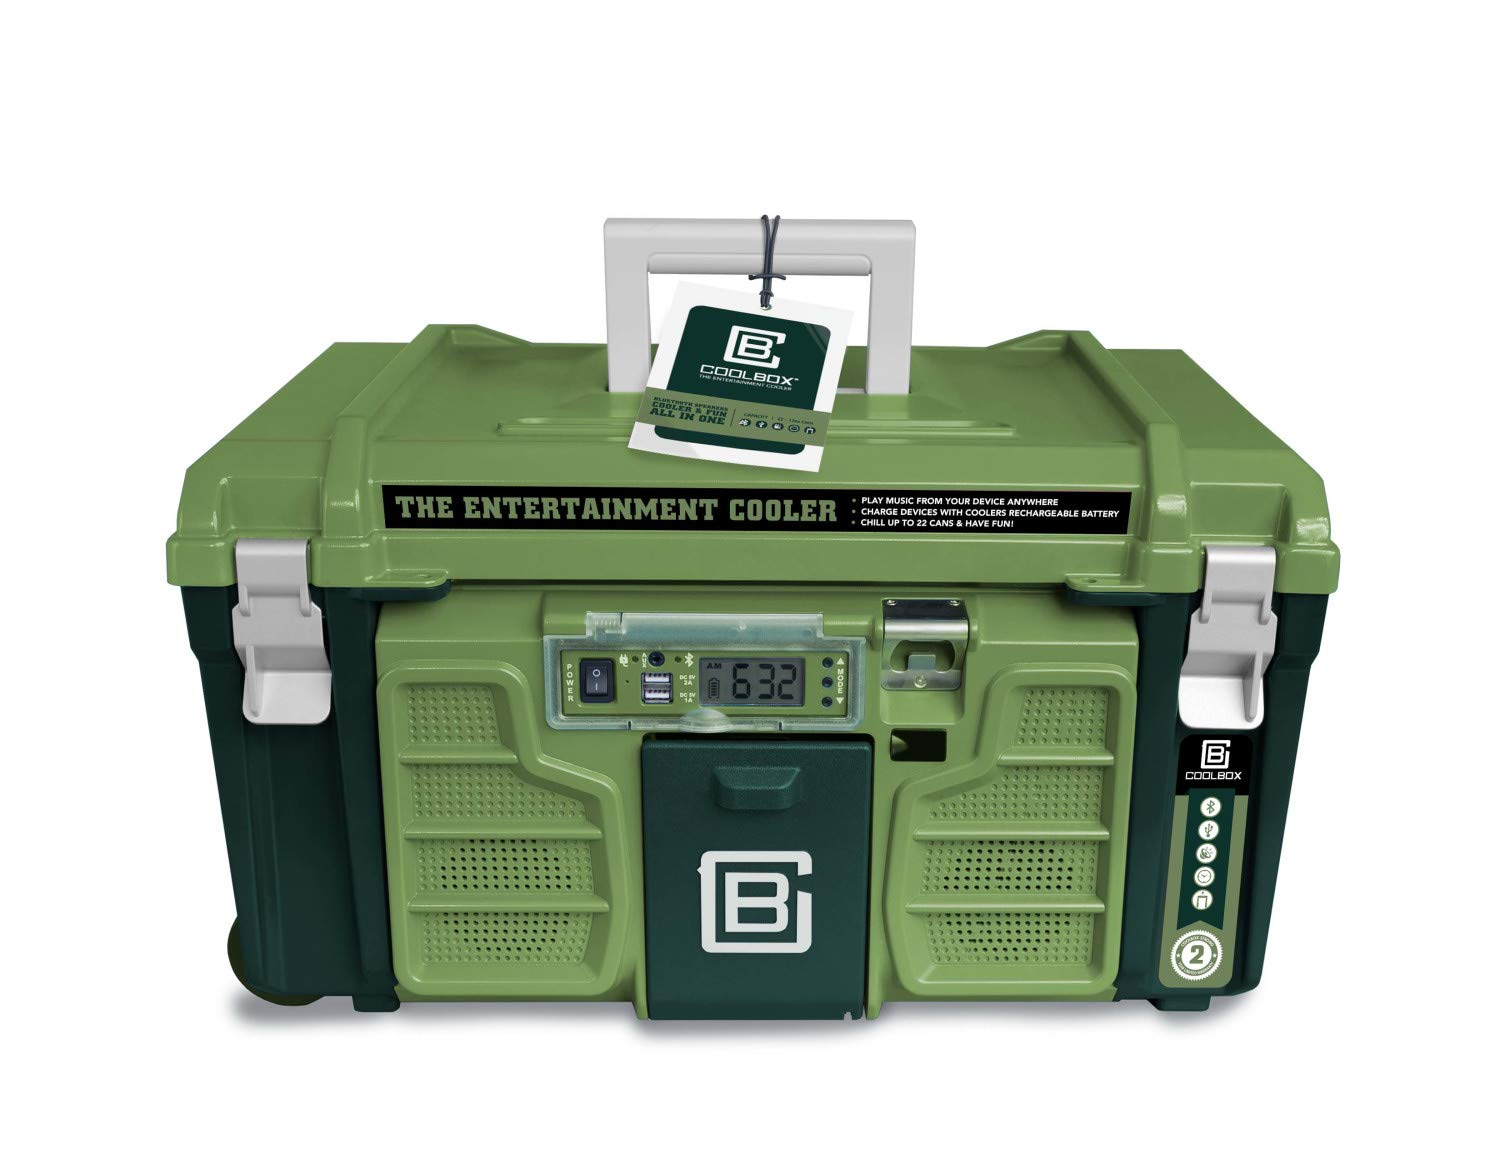 Coolbox: the Entertainment Cooler, Built-in Bluetooth Speakers, Portable and Insulated Ice Chest on Wheels for Travel, Picnics and Camping (Green)